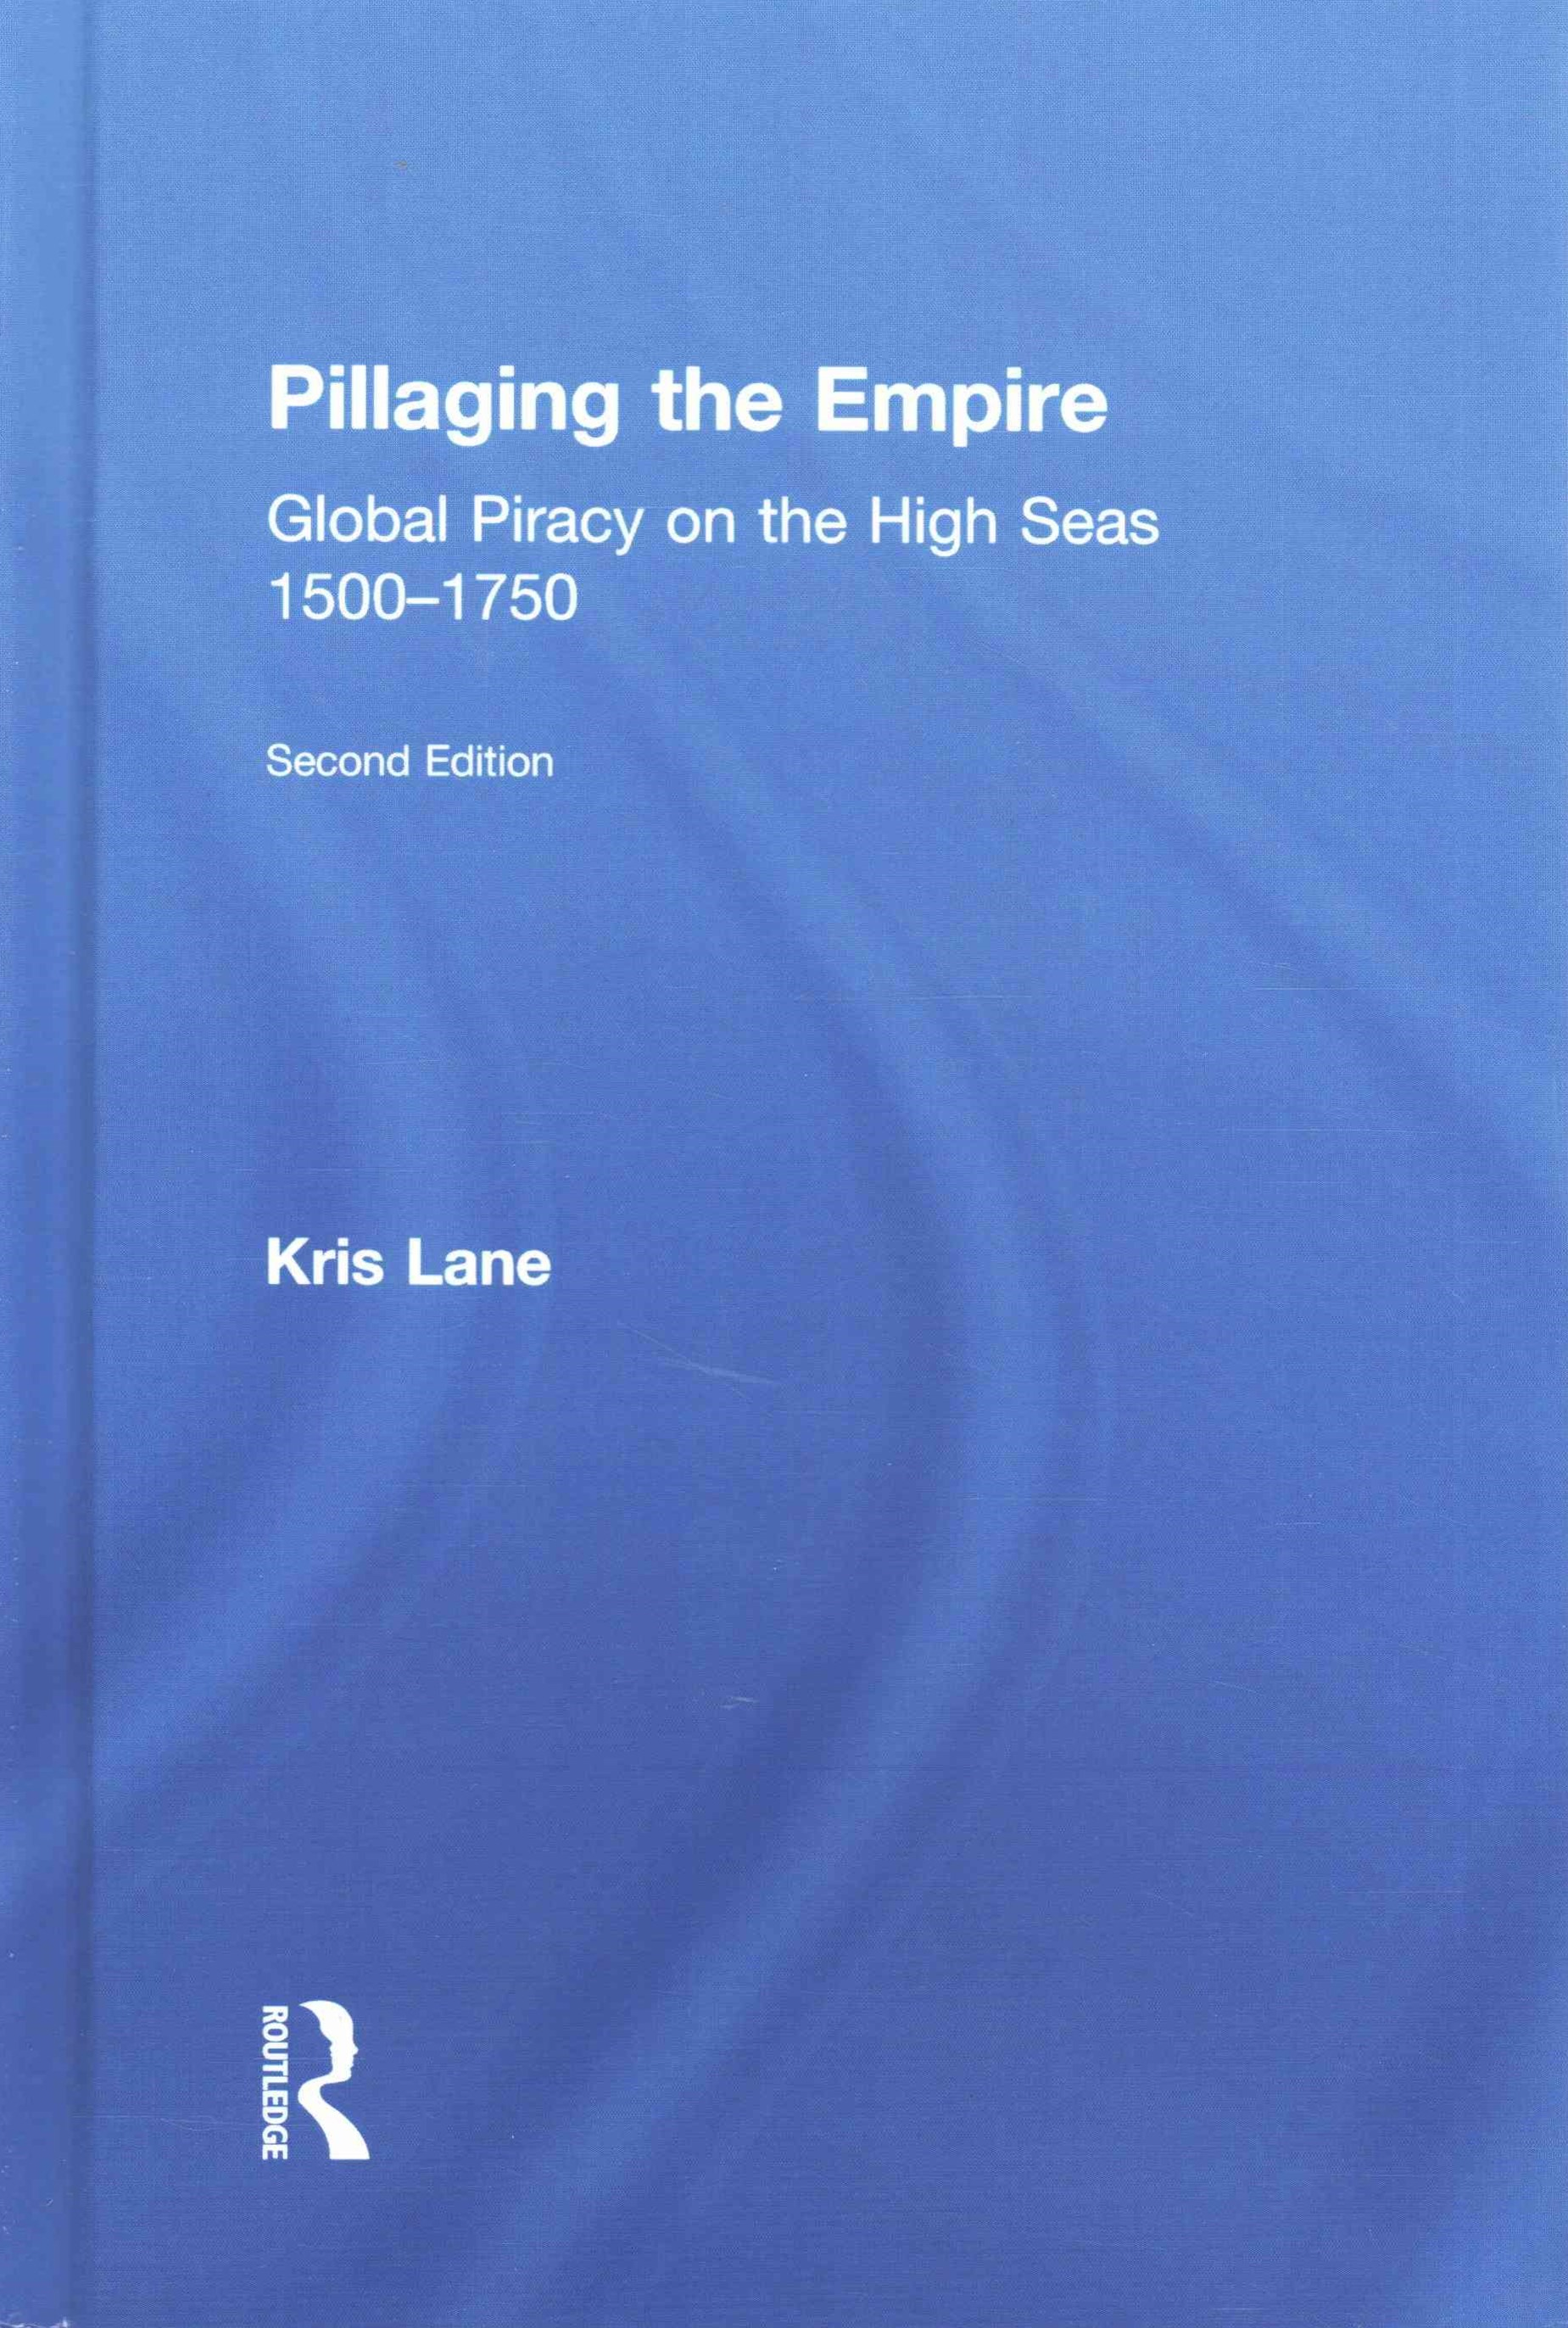 Pillaging the Empire